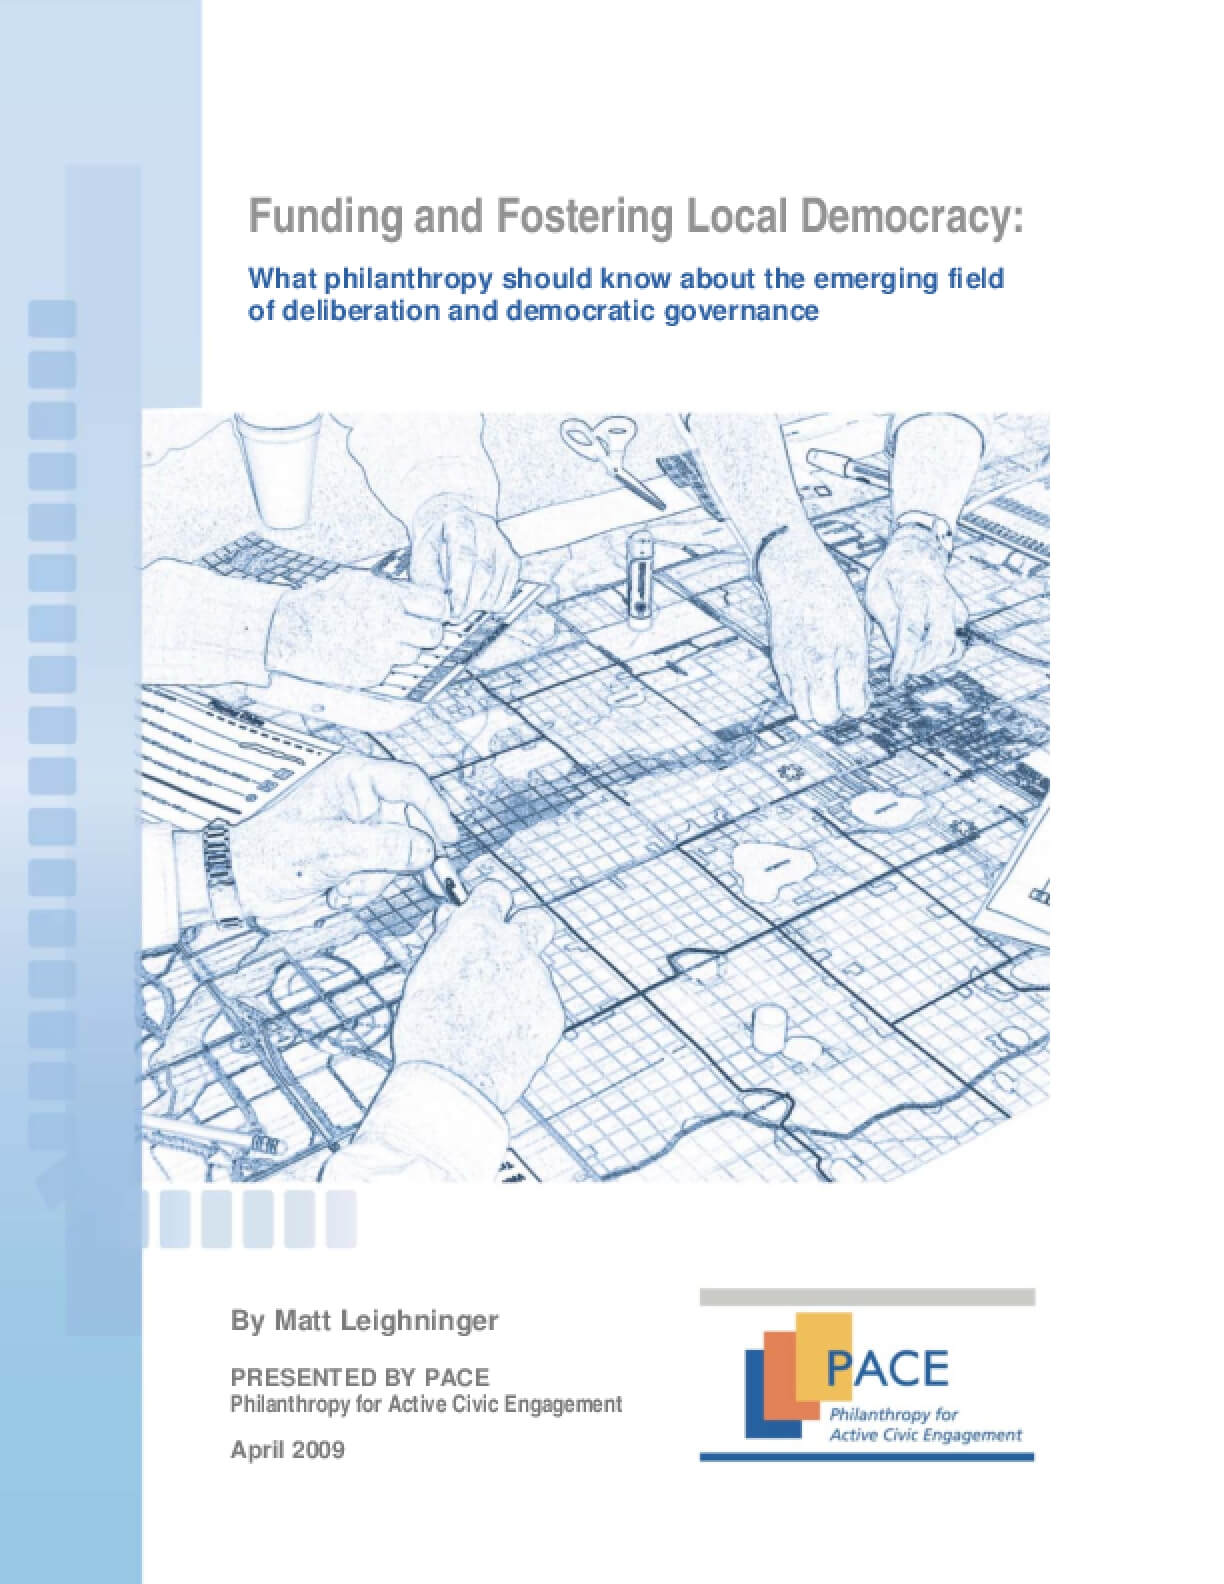 Funding and Fostering Local Democracy: What Philanthropy Should Know About the Emerging Field of Deliberation and Democratic Governance